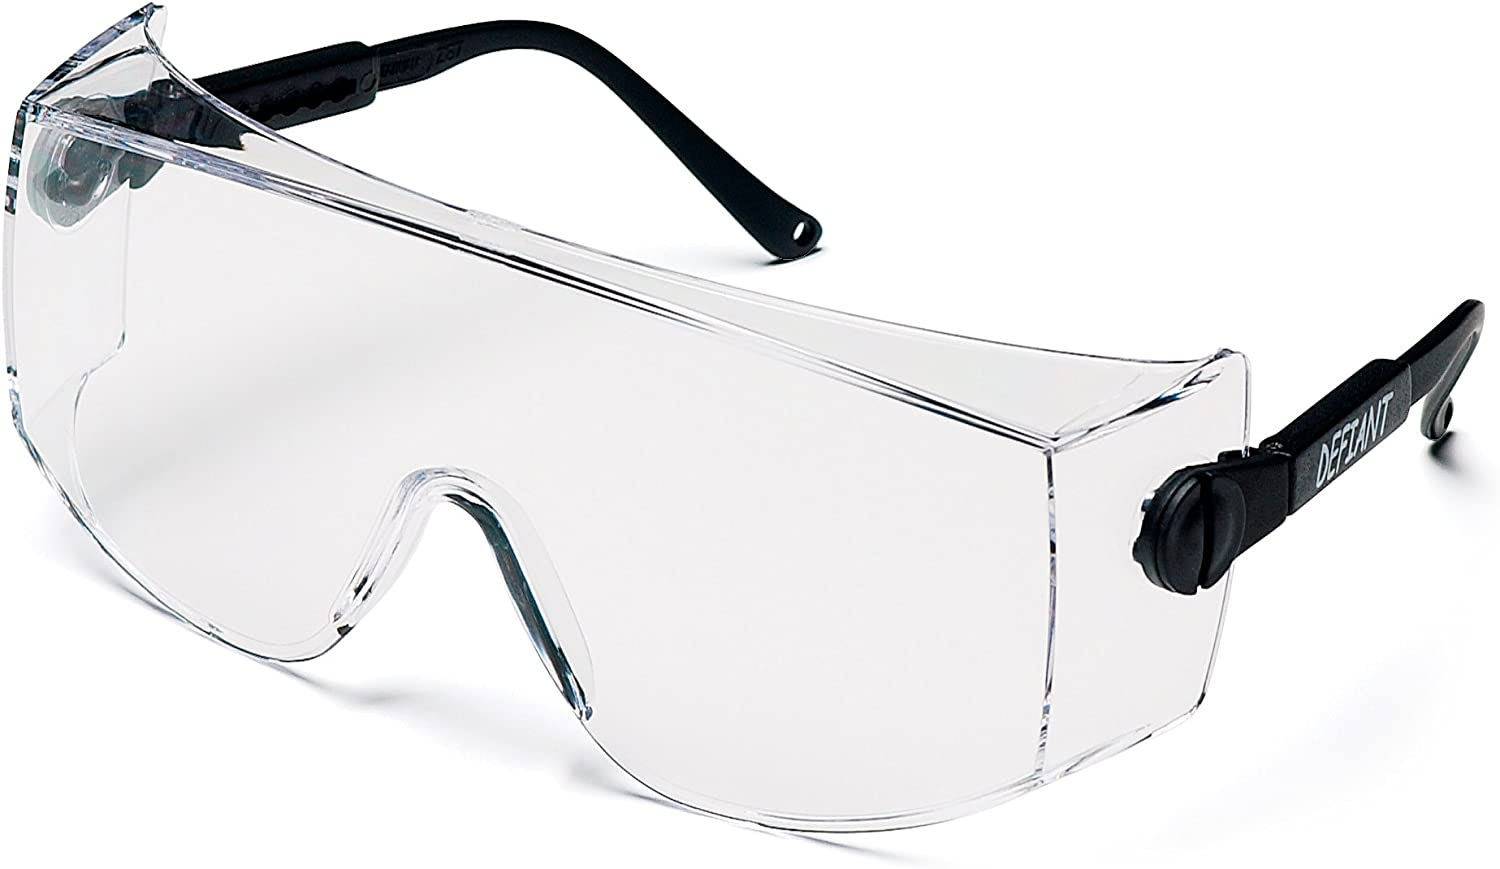 Pyramex Defiant Safety Eyewear, Jumbo Size Clear Lens with Black Temples : Hunting Safety Glasses : Sports & Outdoors